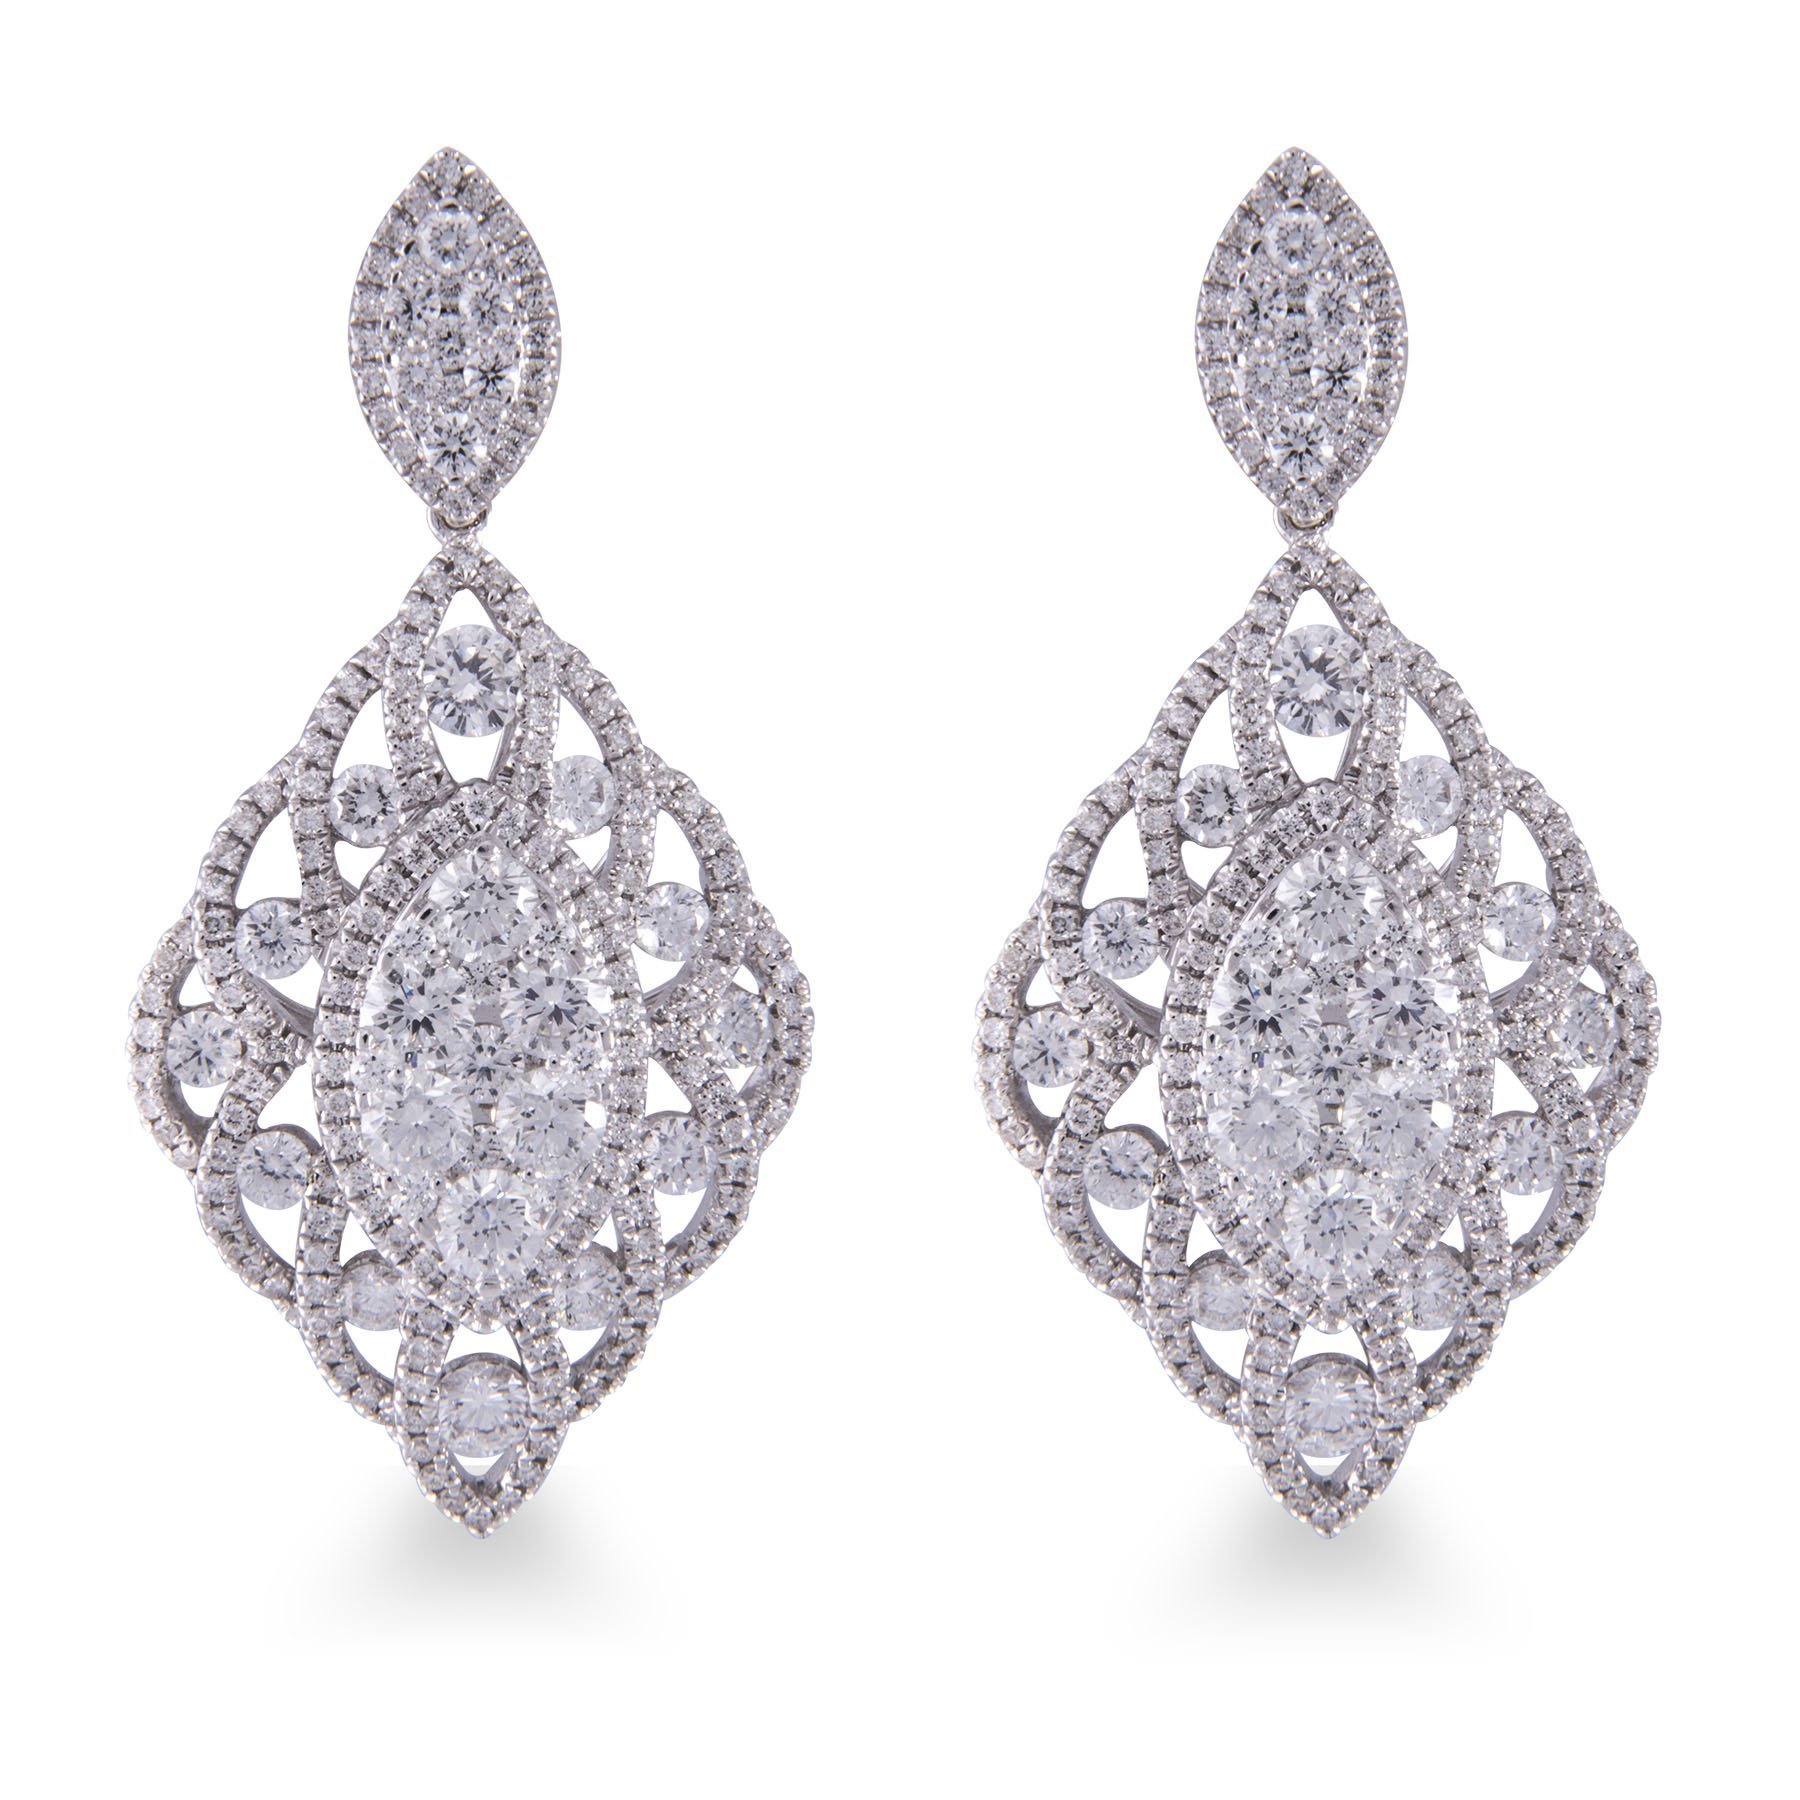 Wholesale Diamond Earrings Dallas TX Diamond Mounting